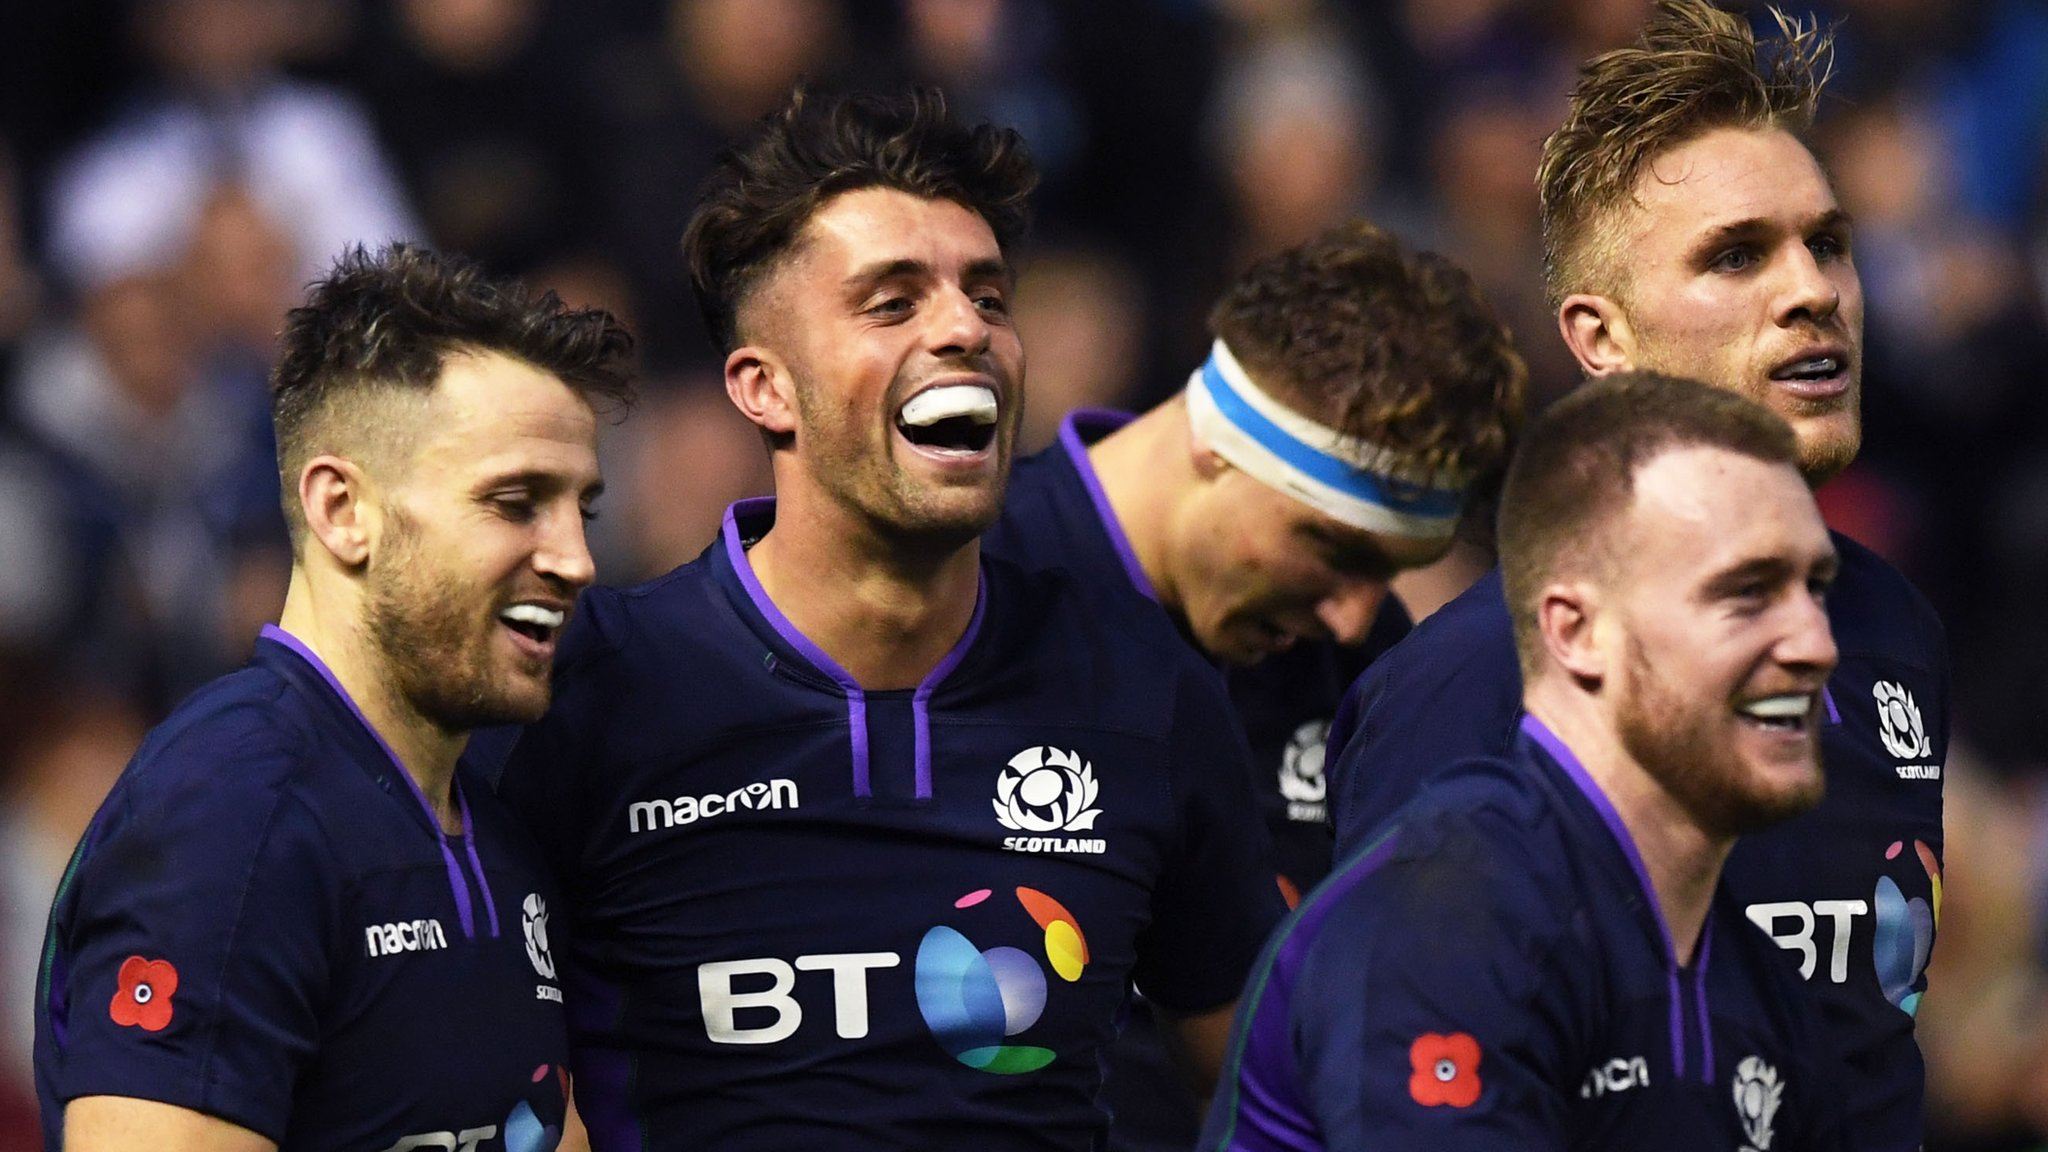 Scotland 'will rise' to Springbok challenge, says Townsend